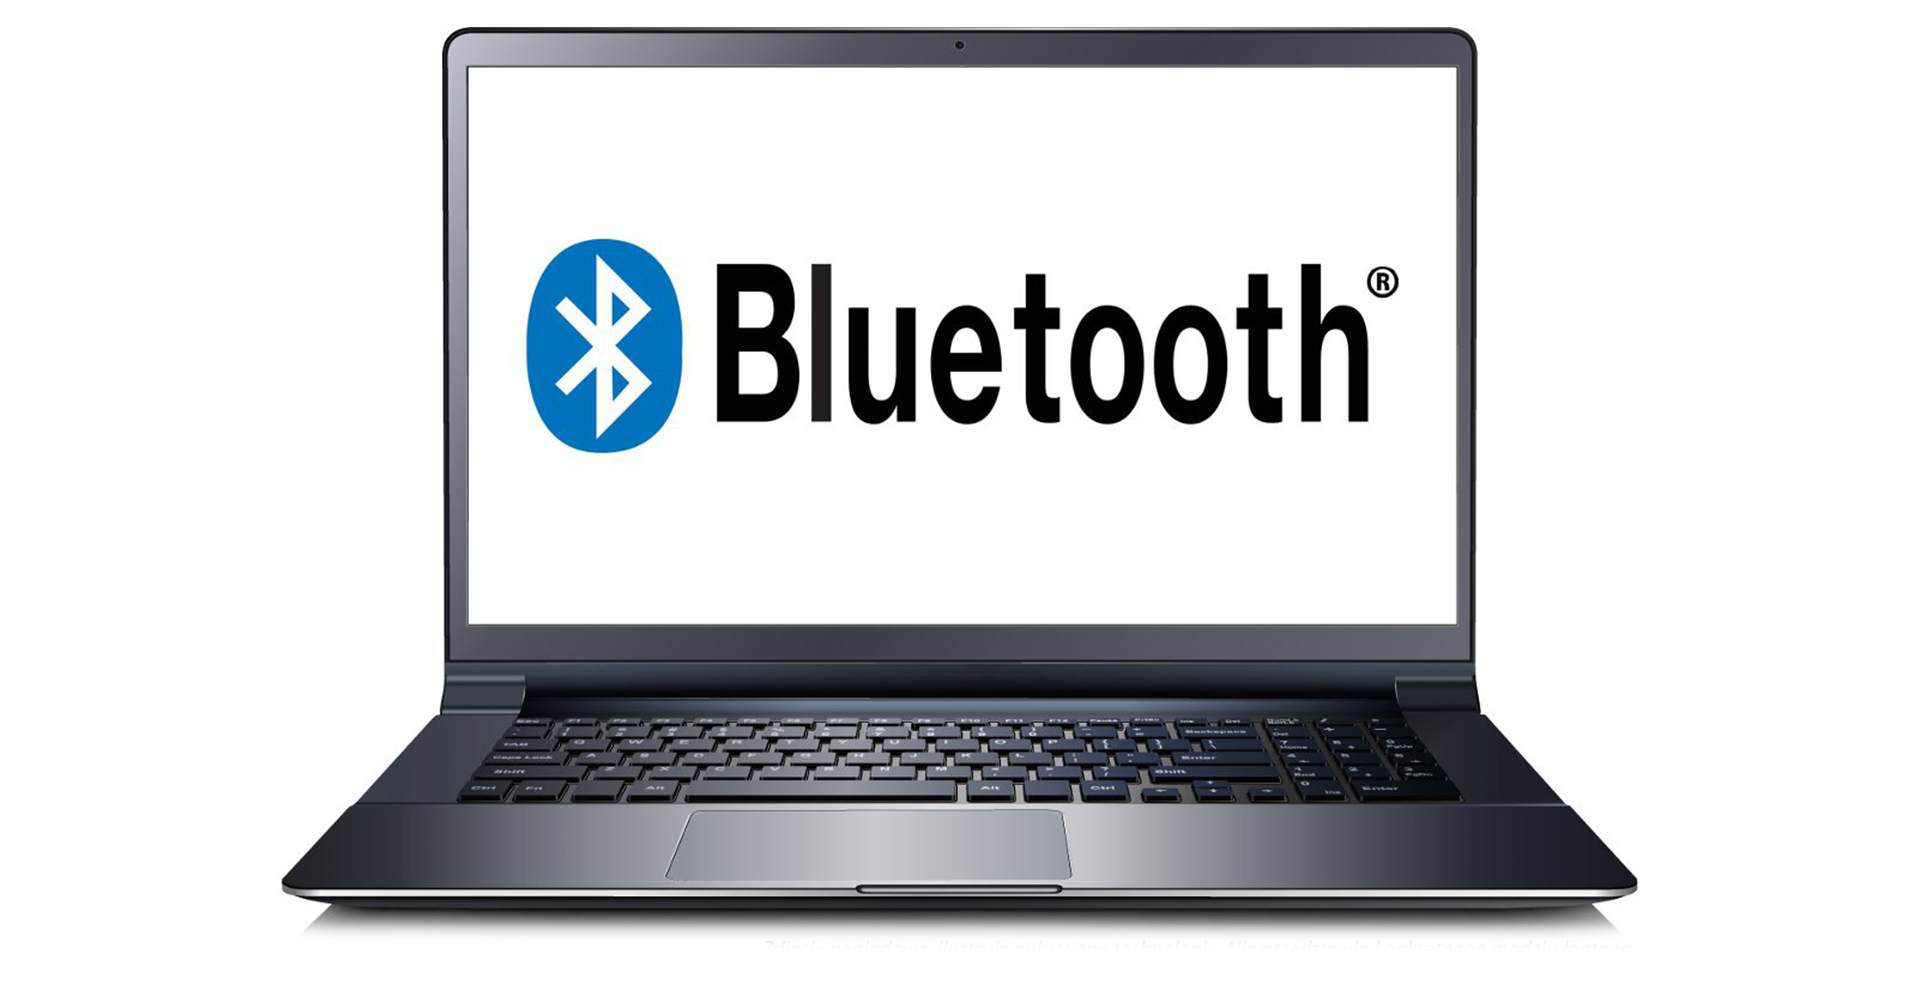 Dell G3 15 3590 i5-9300H 8GB 1TB+256GB Linux                             Bluetooth